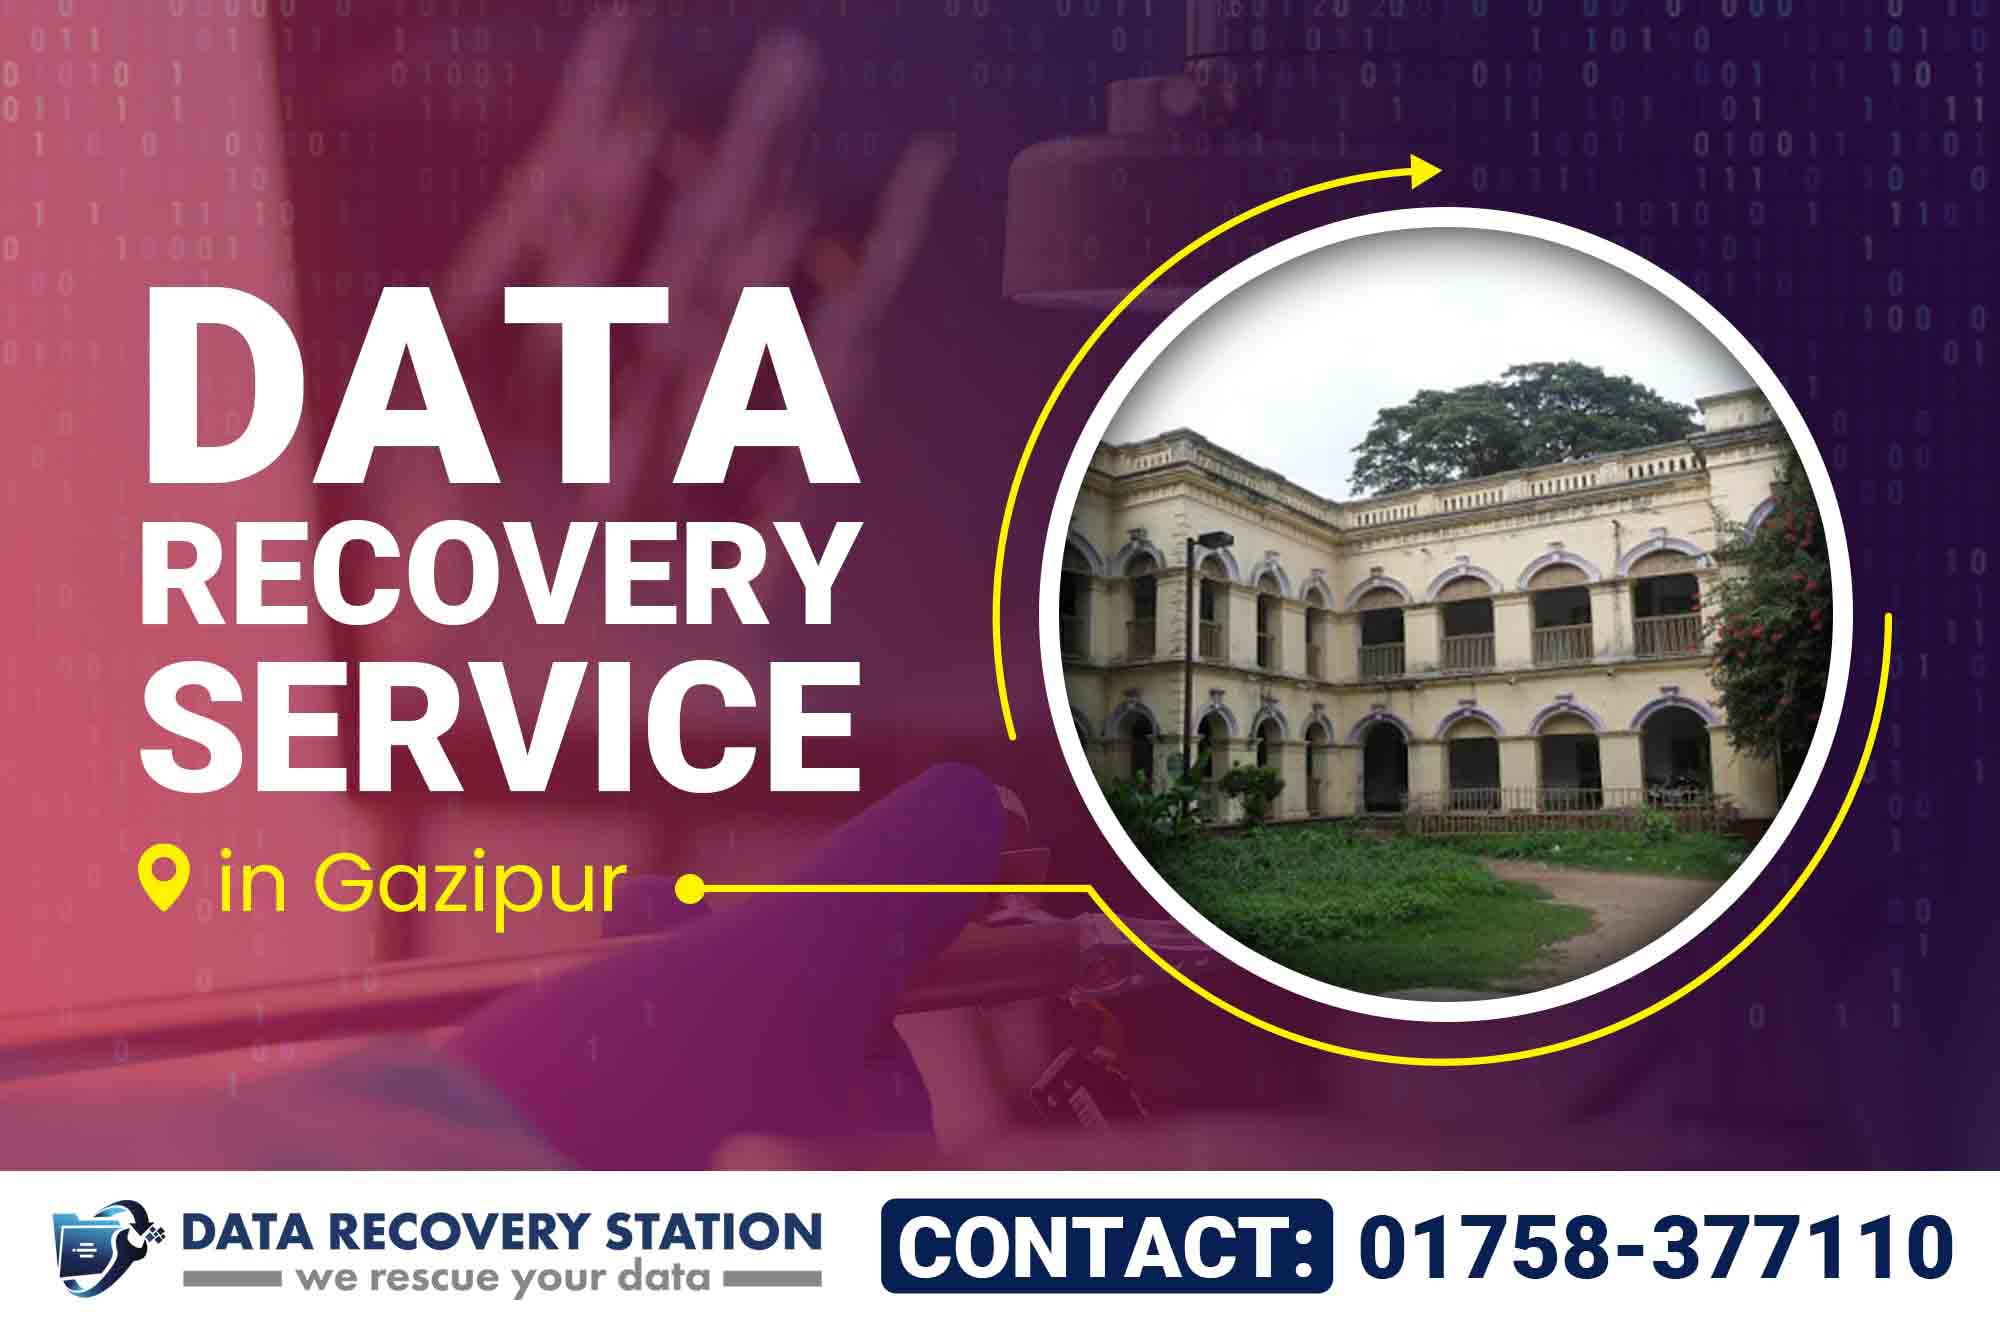 Data Recovery Service in Gazipur